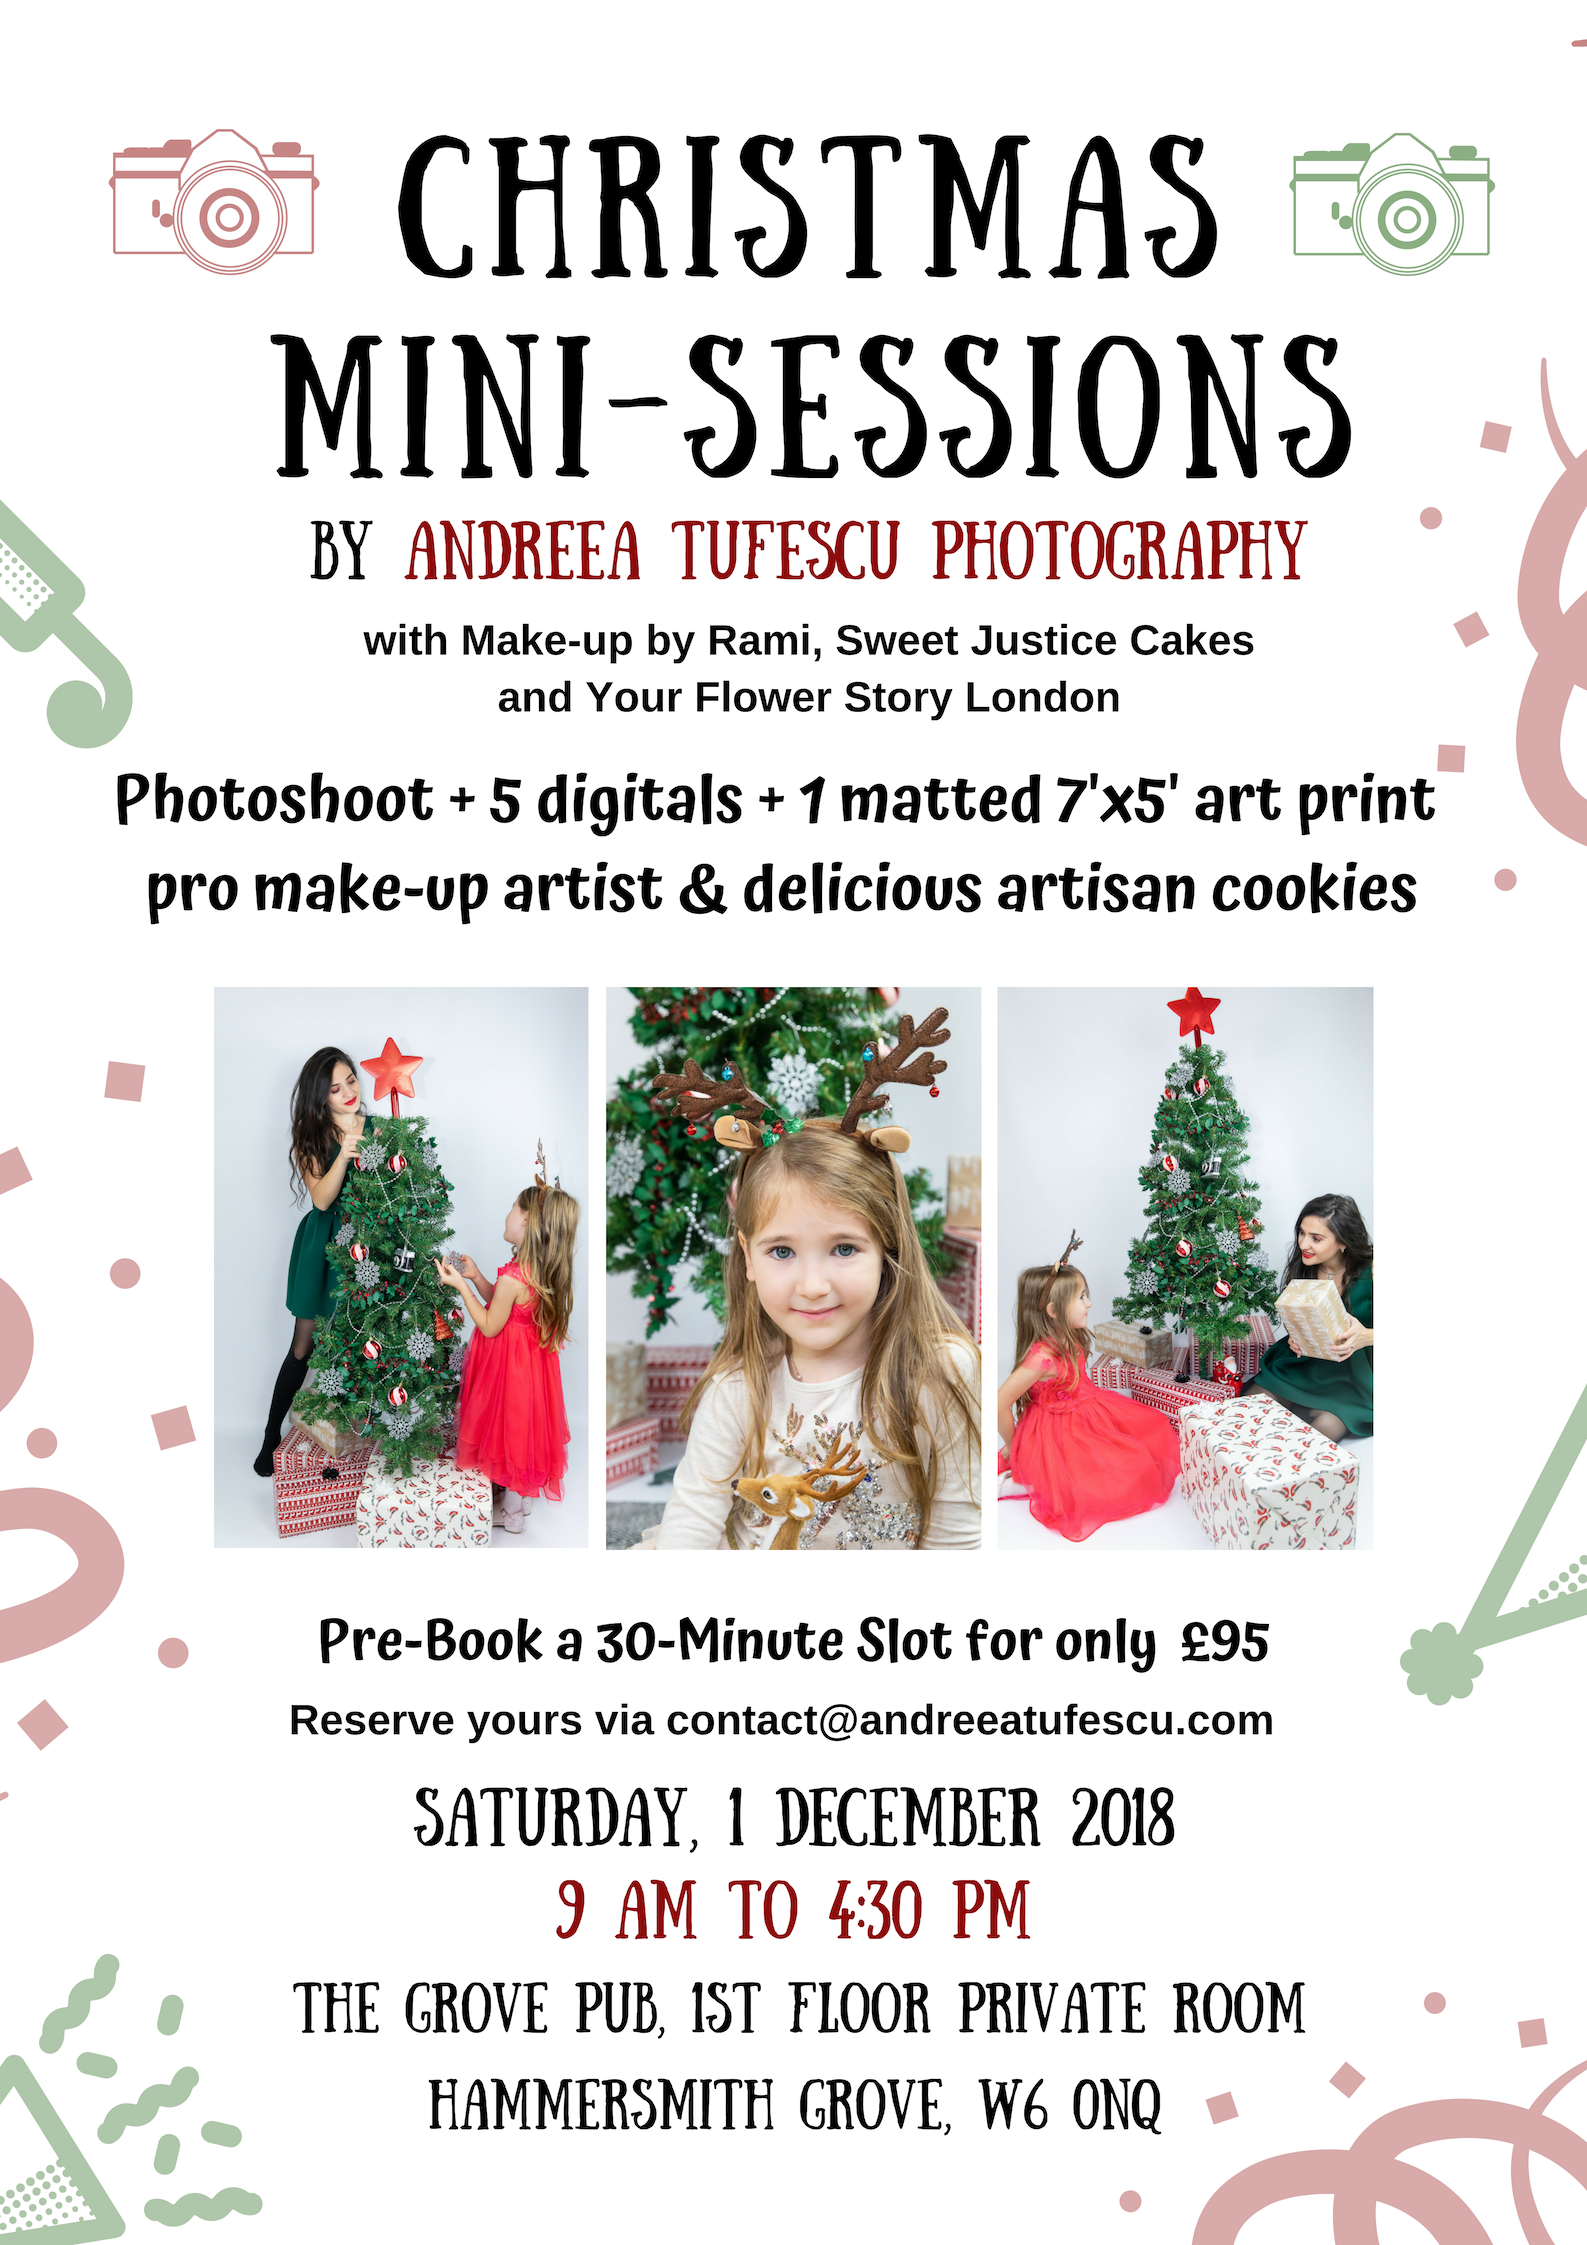 Family Photography - Christmas Mini Sessions with Andreea Tufescu.png